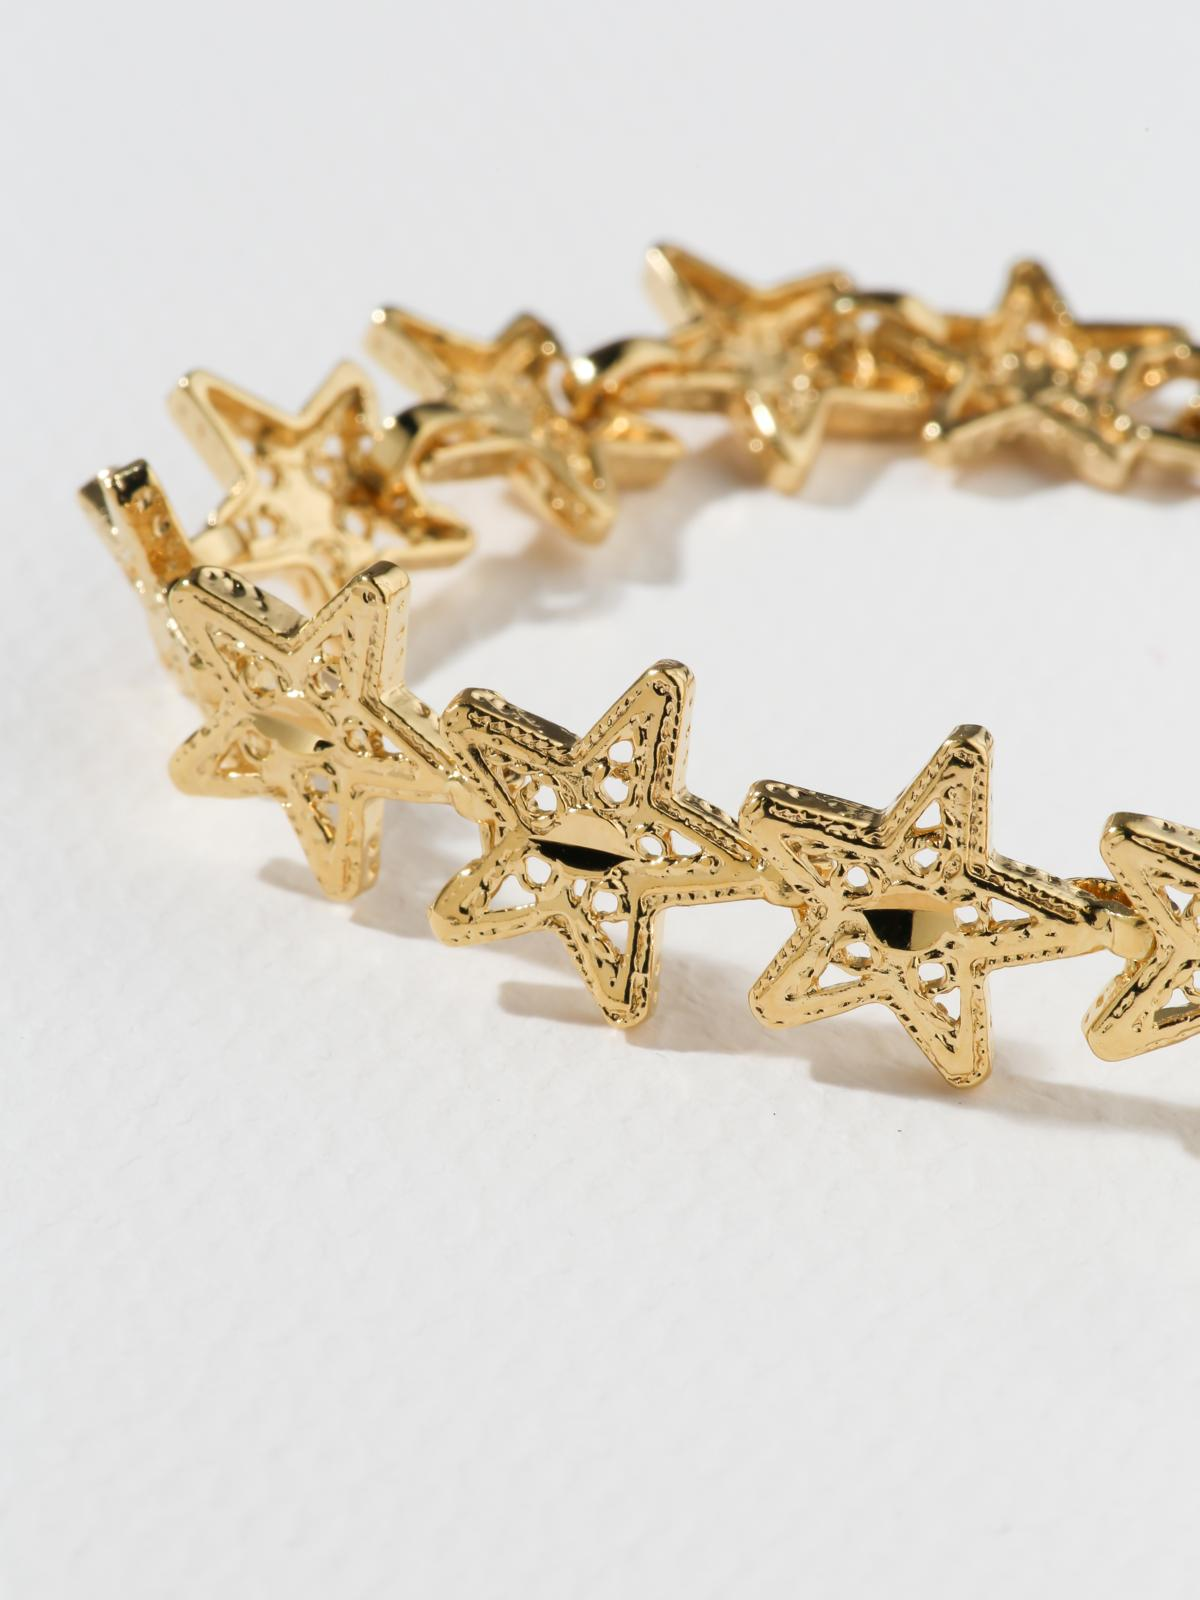 The Starry Eyes Bracelet